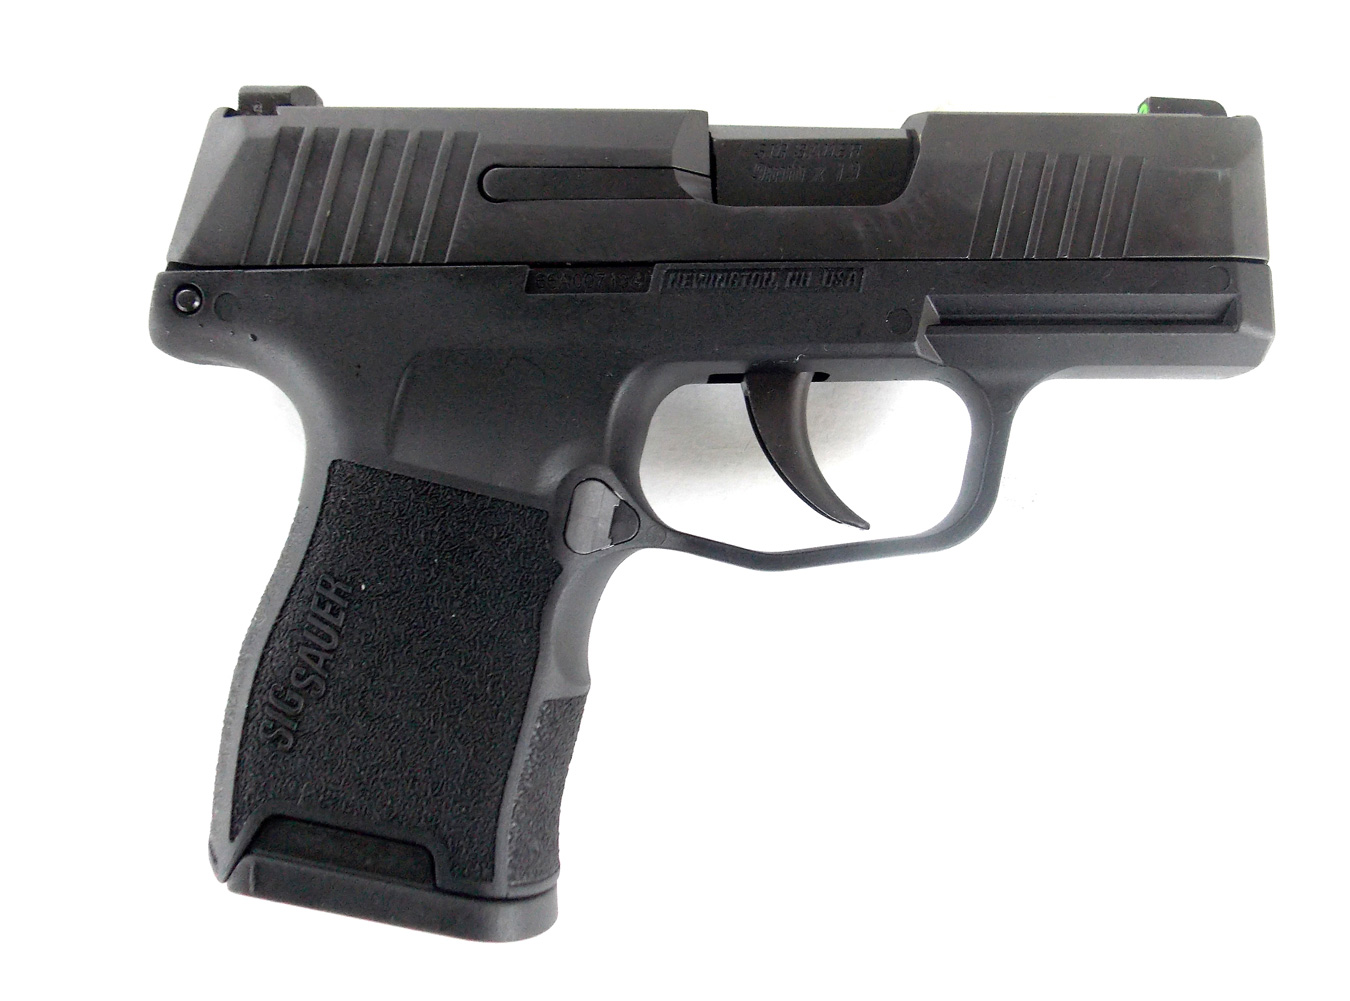 SIG Sauer P365 pistol right profile